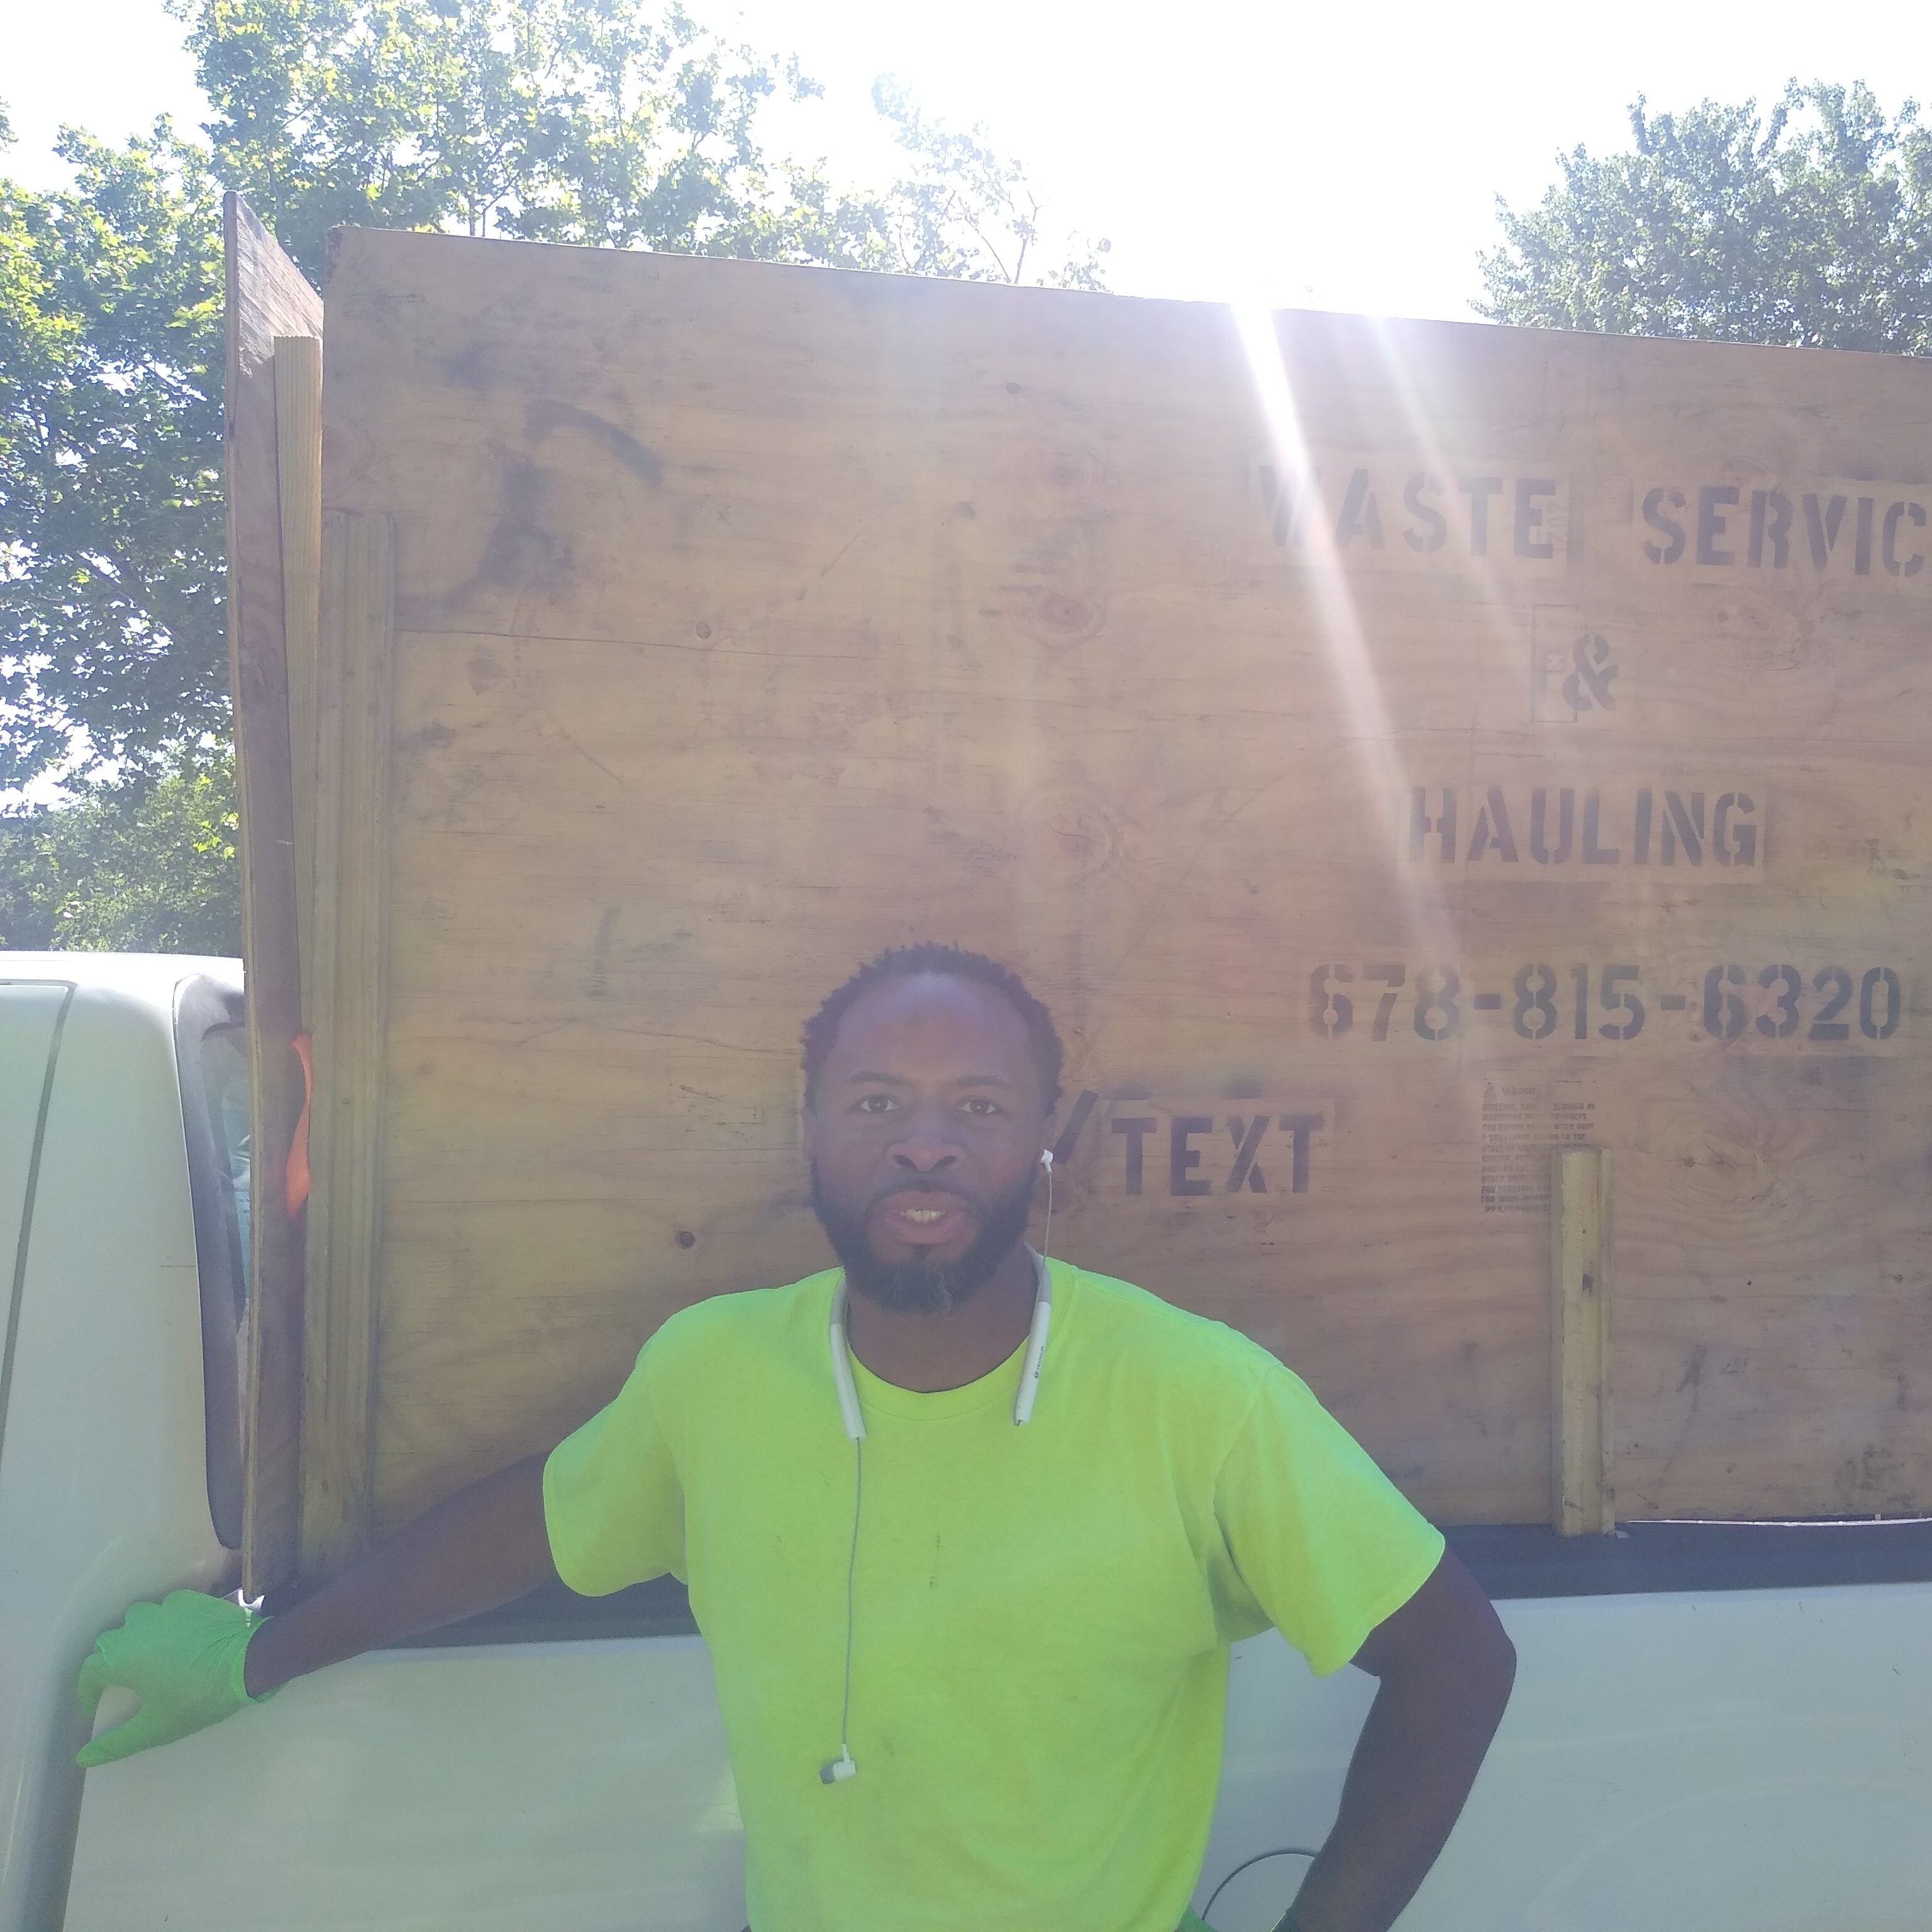 JENX WASTE SERVICES AND HAULING